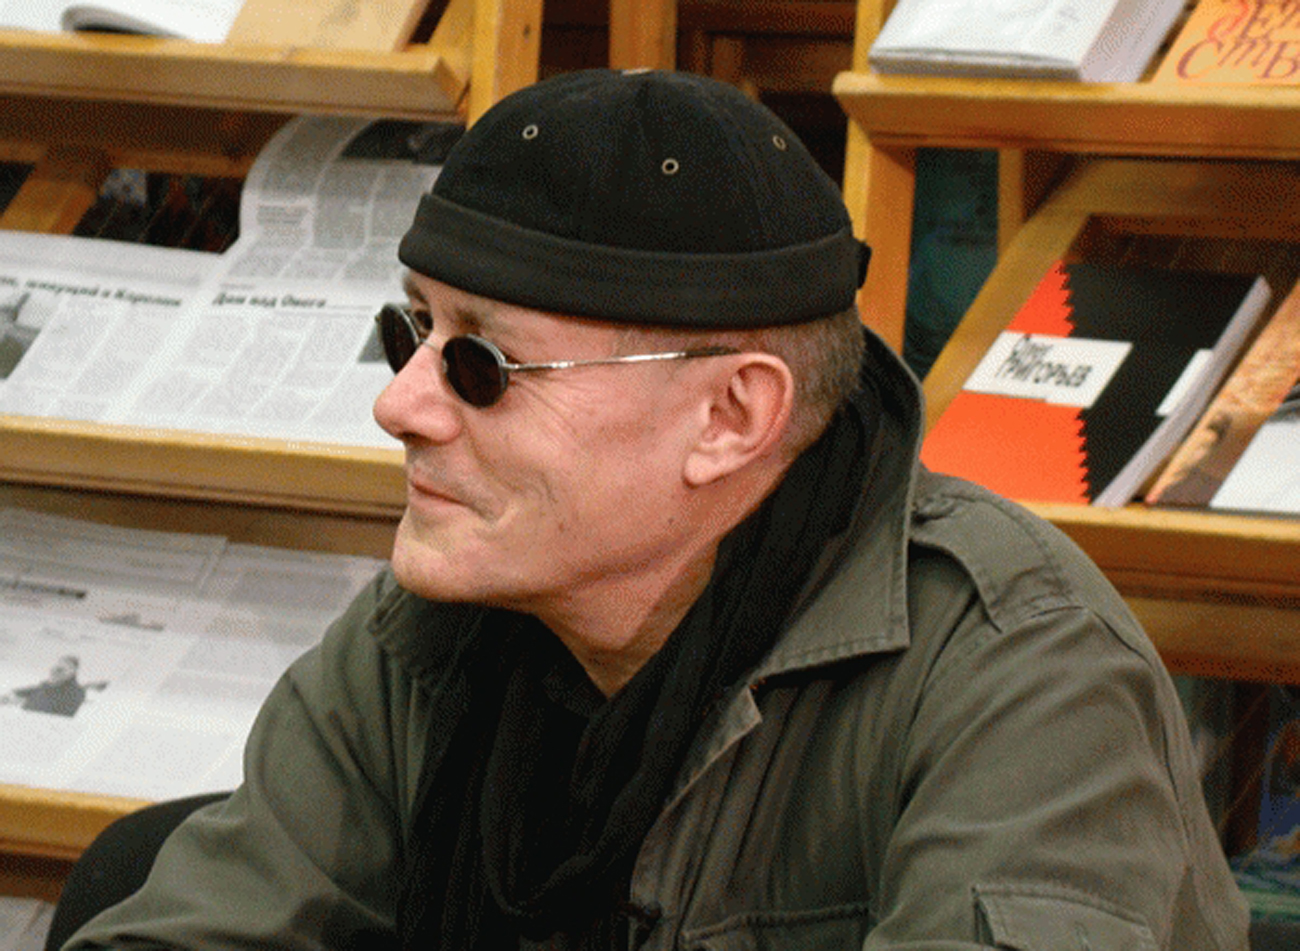 Wilk writes books about Russia's north with a particular emphasis on those living alongside him, ordinary Russians from the villages beyond Lake Onega. Photo: Polish author Mariusz Wilk. Source: Personal archive